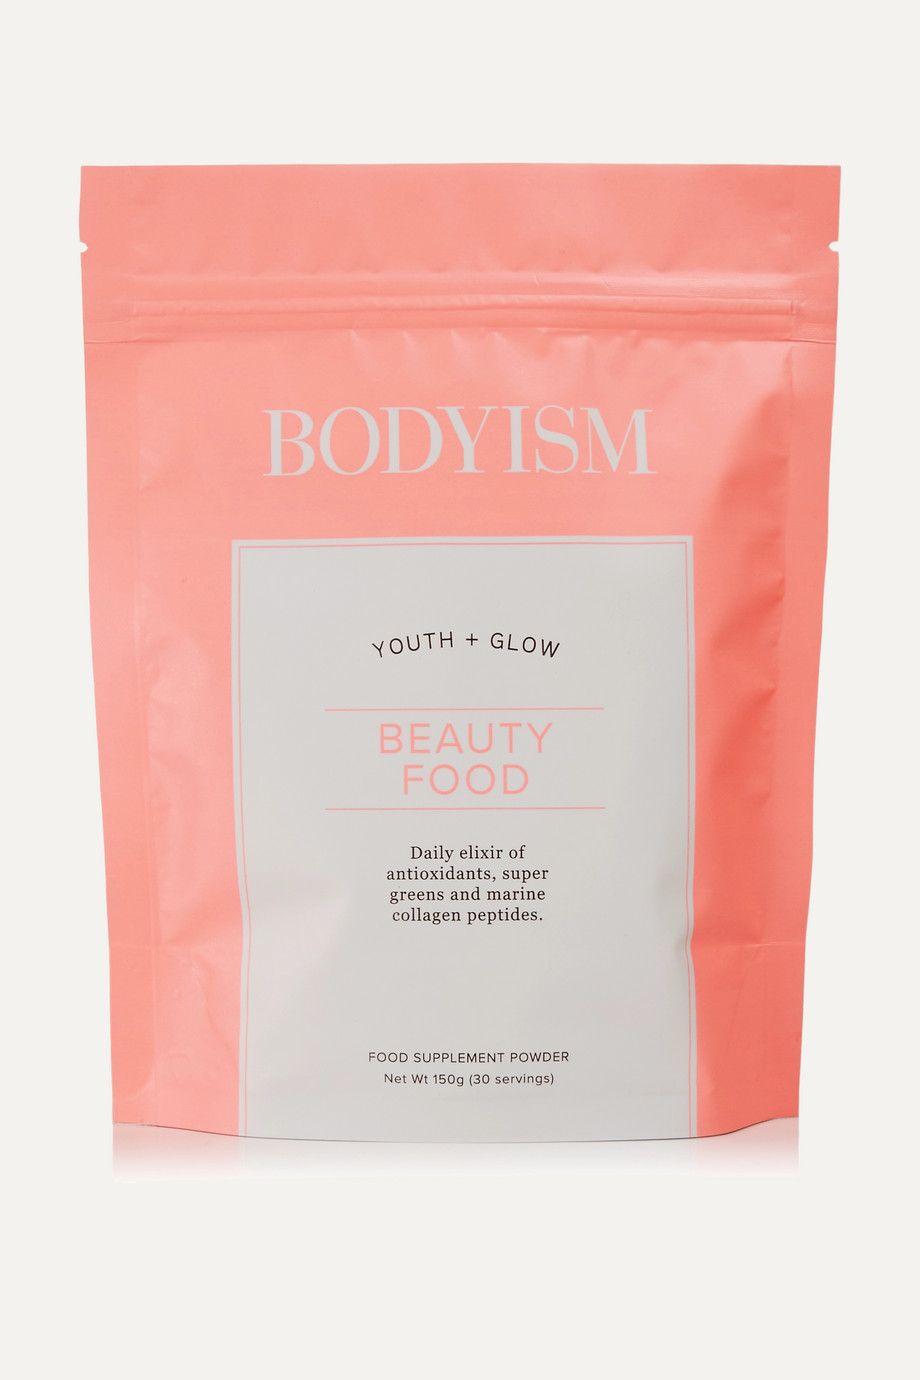 Beauty Food Supplement, 150g, by Bodyism's Clean and Lean